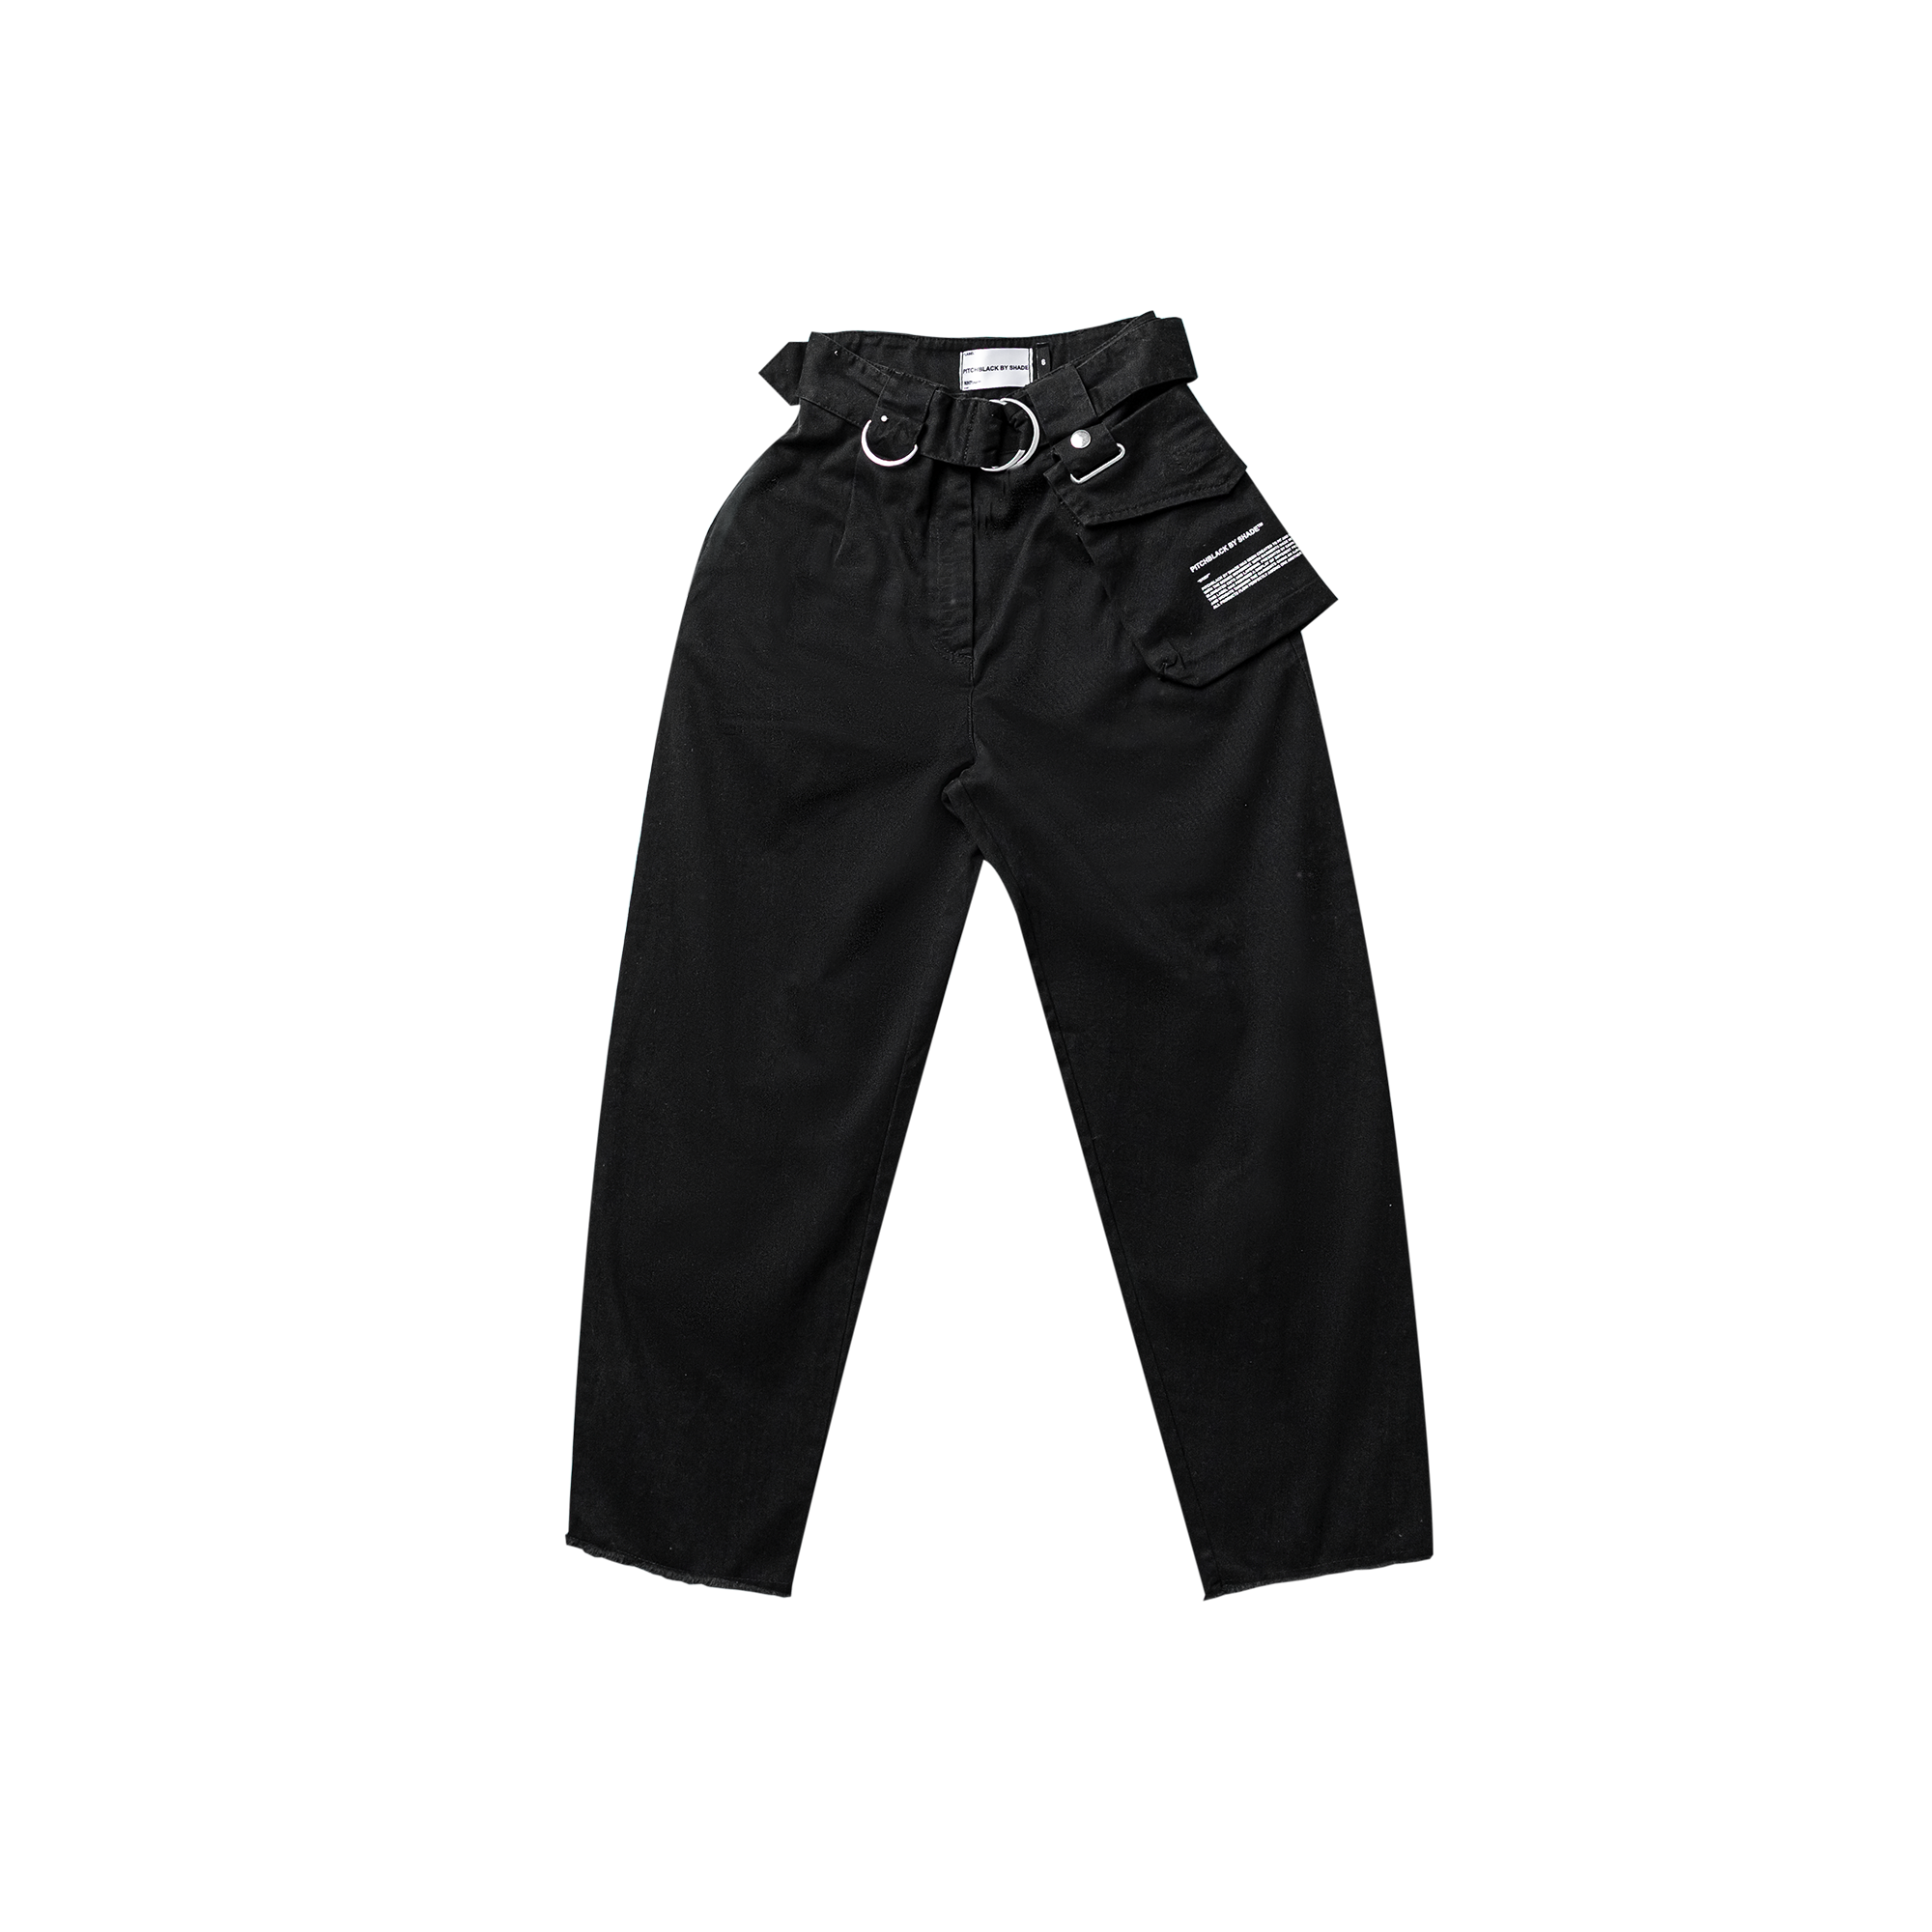 007 TACTICAL TROUSER